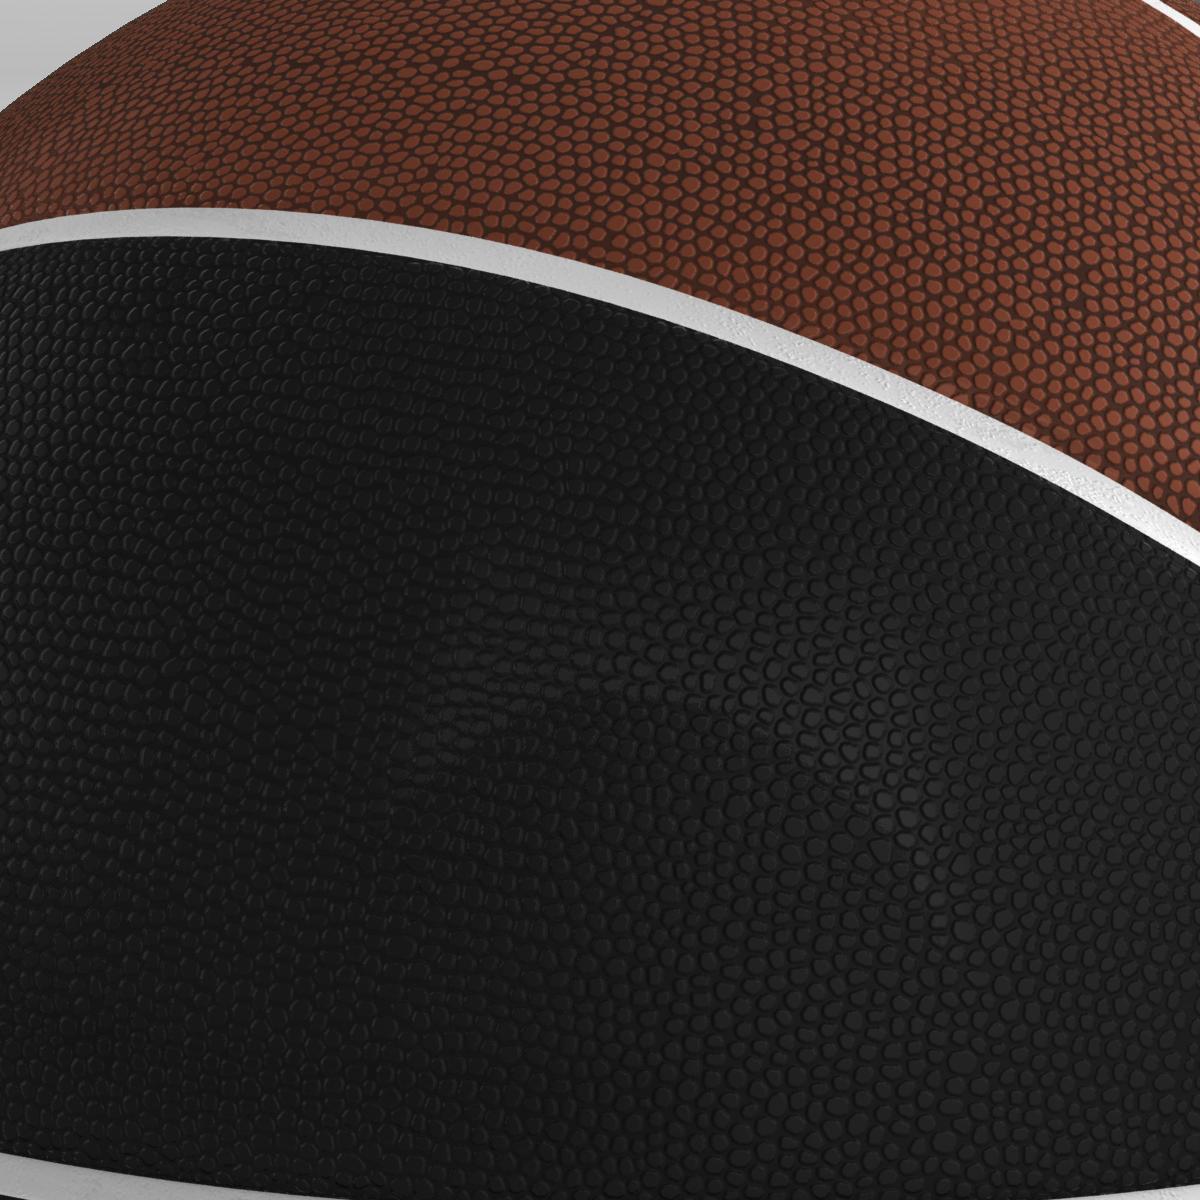 basketball ball euro brown-black 3d model 3ds max fbx c4d ma mb obj 165101